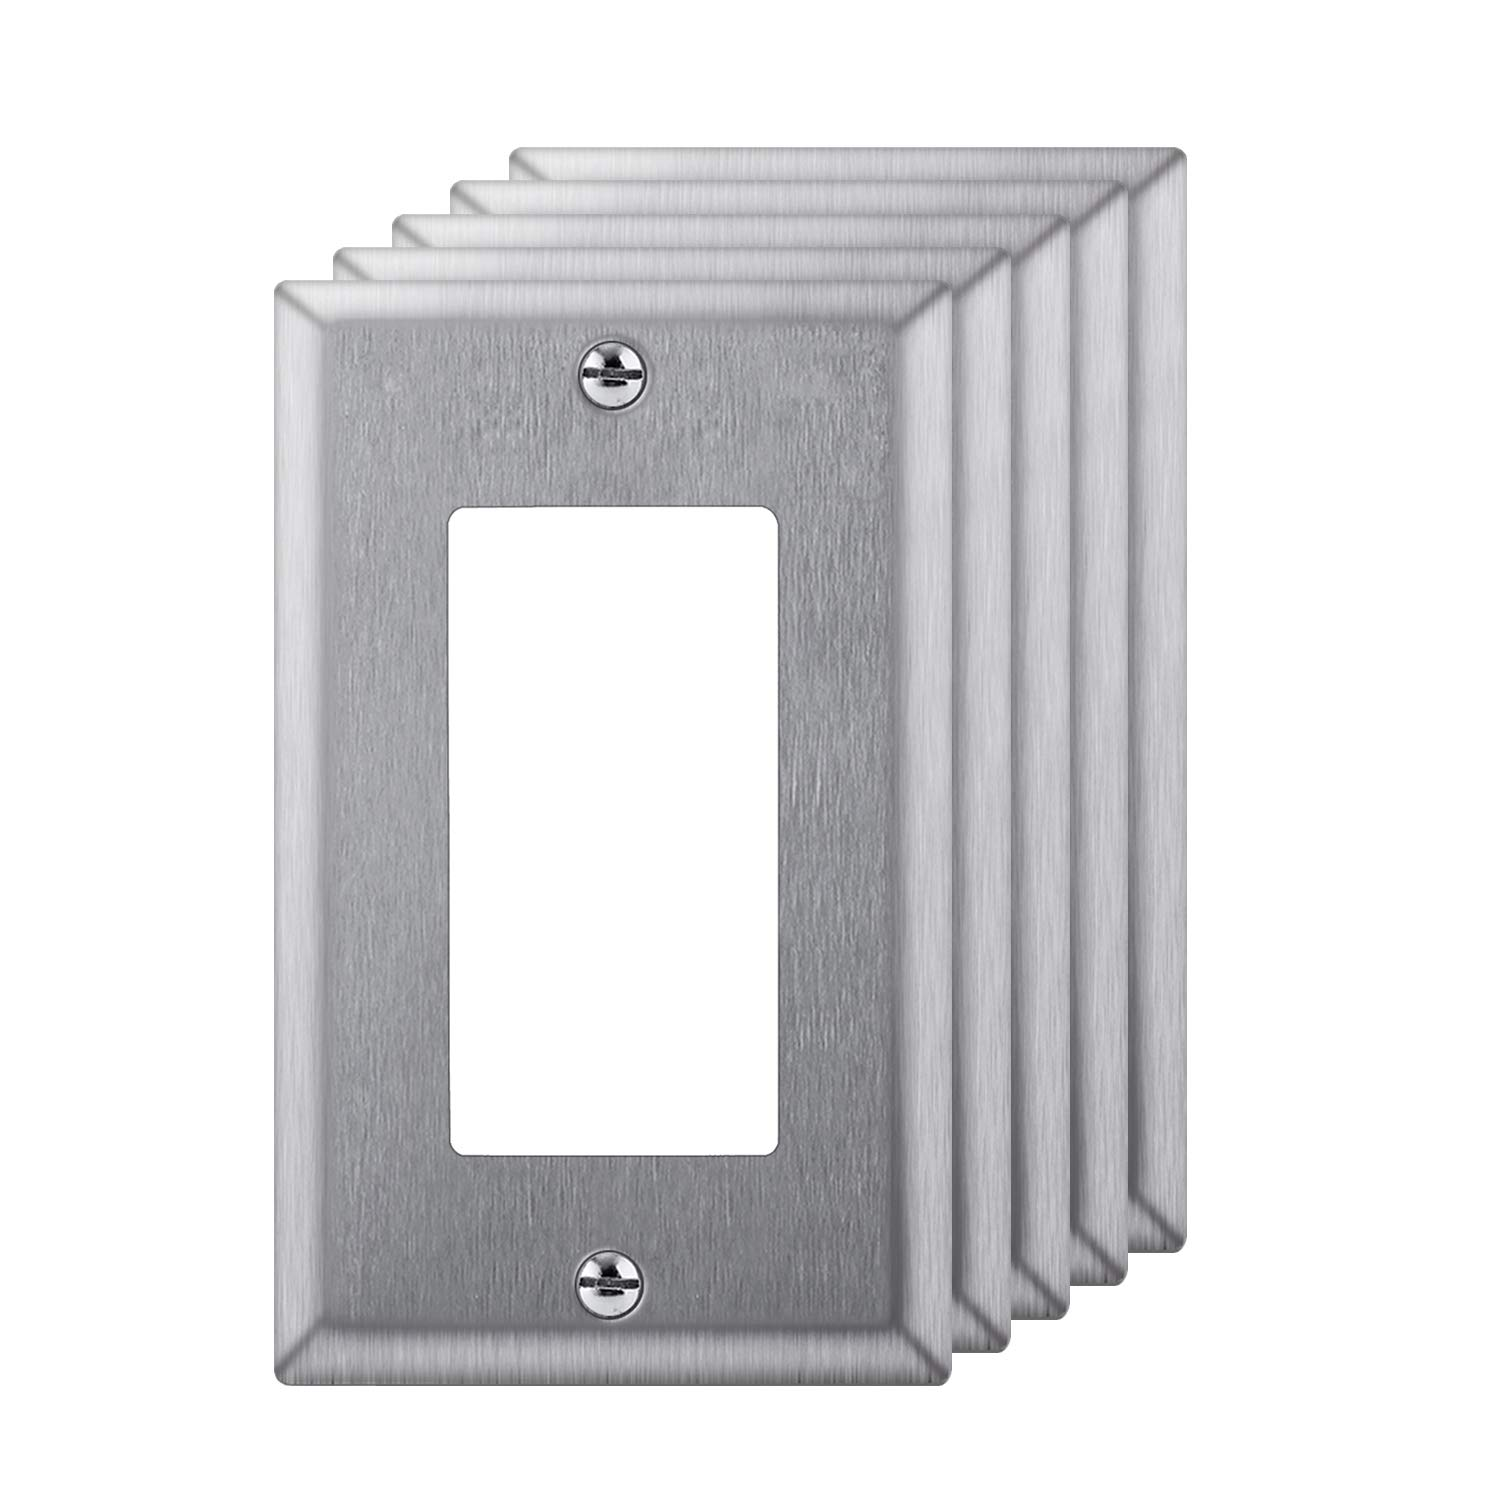 [5 Pack] BESTTEN 1-Gang Decorator Metal Wall Plate, Anti-Corrosion Stainless Steel Outlet and Switch Cover, Industrial Grade Stainless Steel, Standard Size, Screw Included, Silver